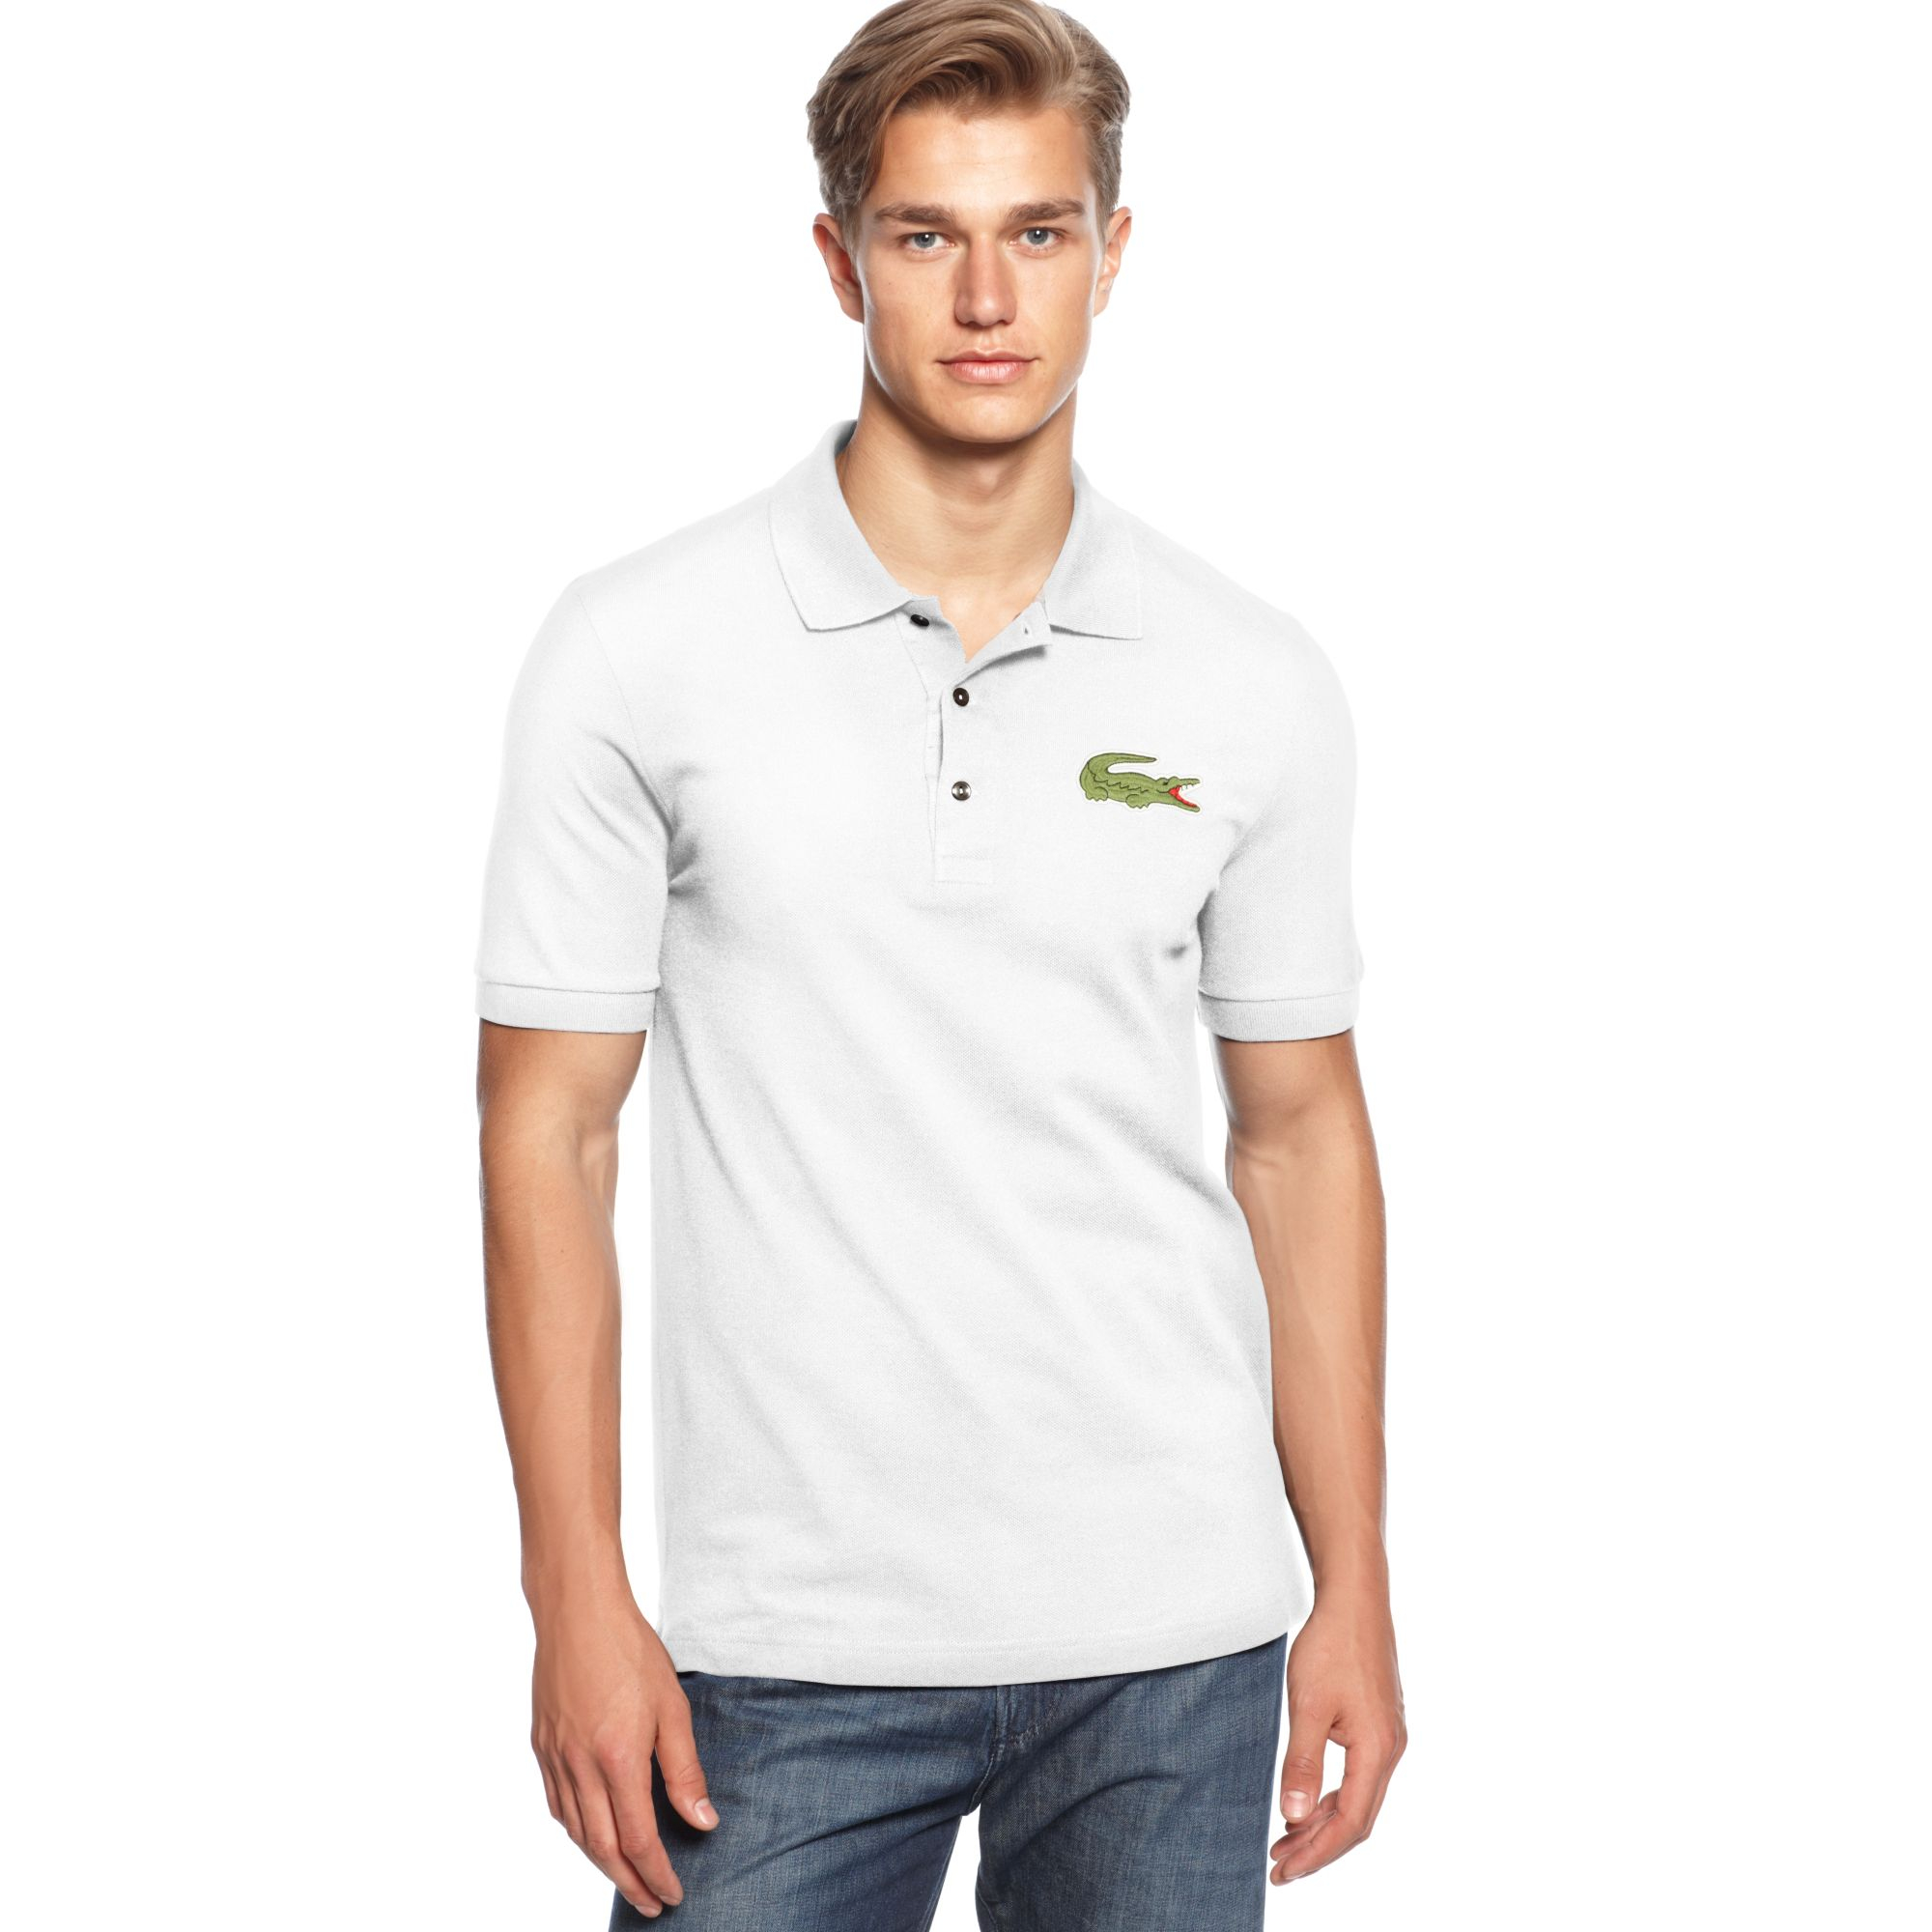 Lacoste Oversized Crocodile Pique Polo In White For Men Lyst